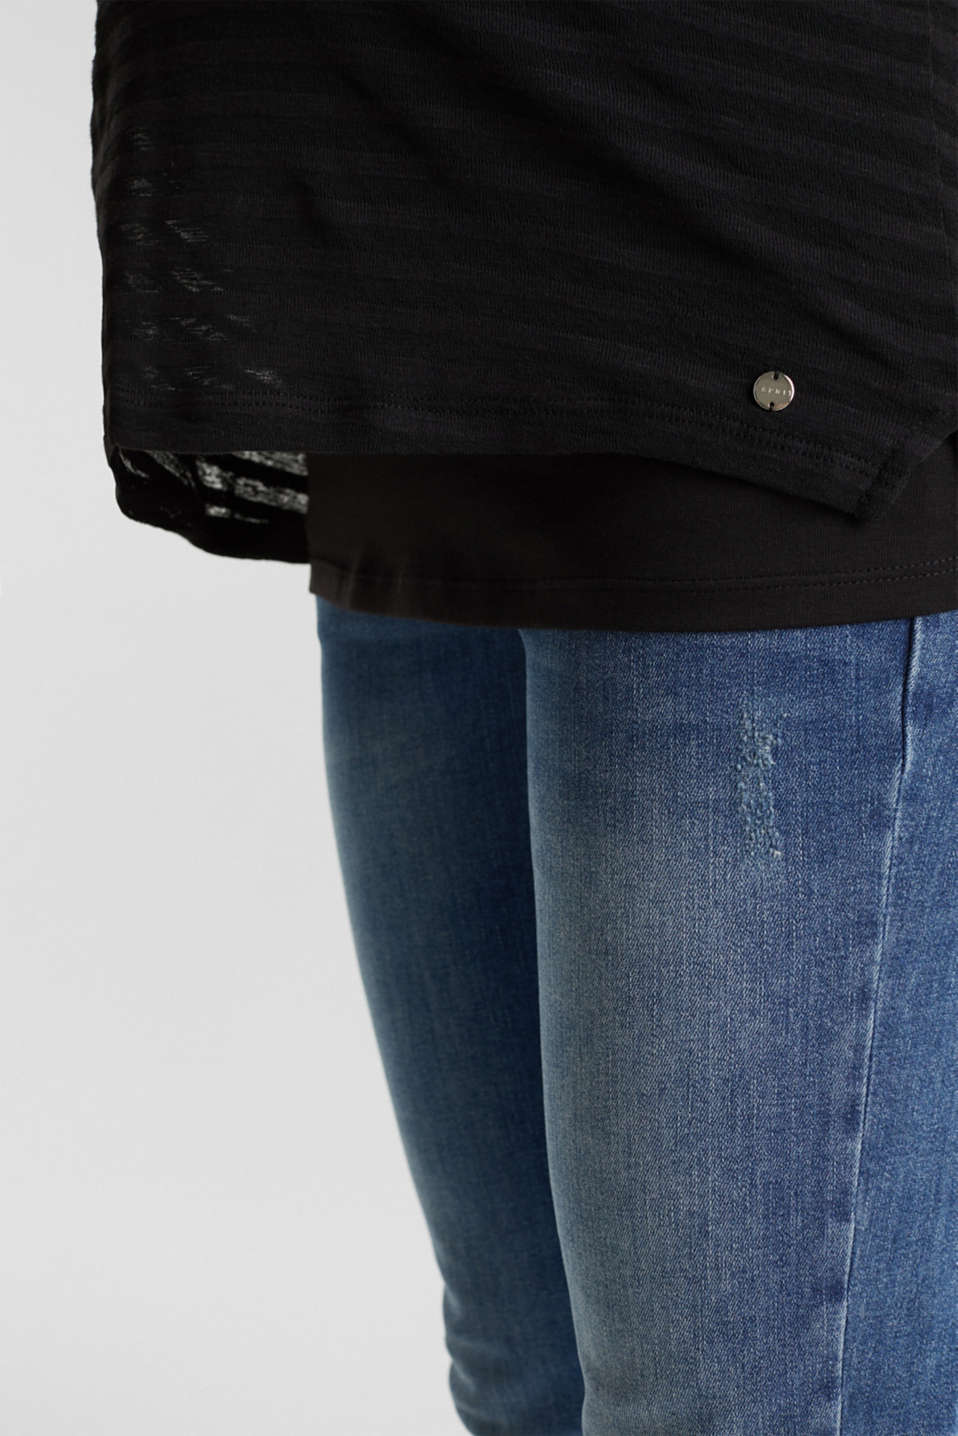 2 in 1: Long sleeve top with a nursing top, BLACK, detail image number 5